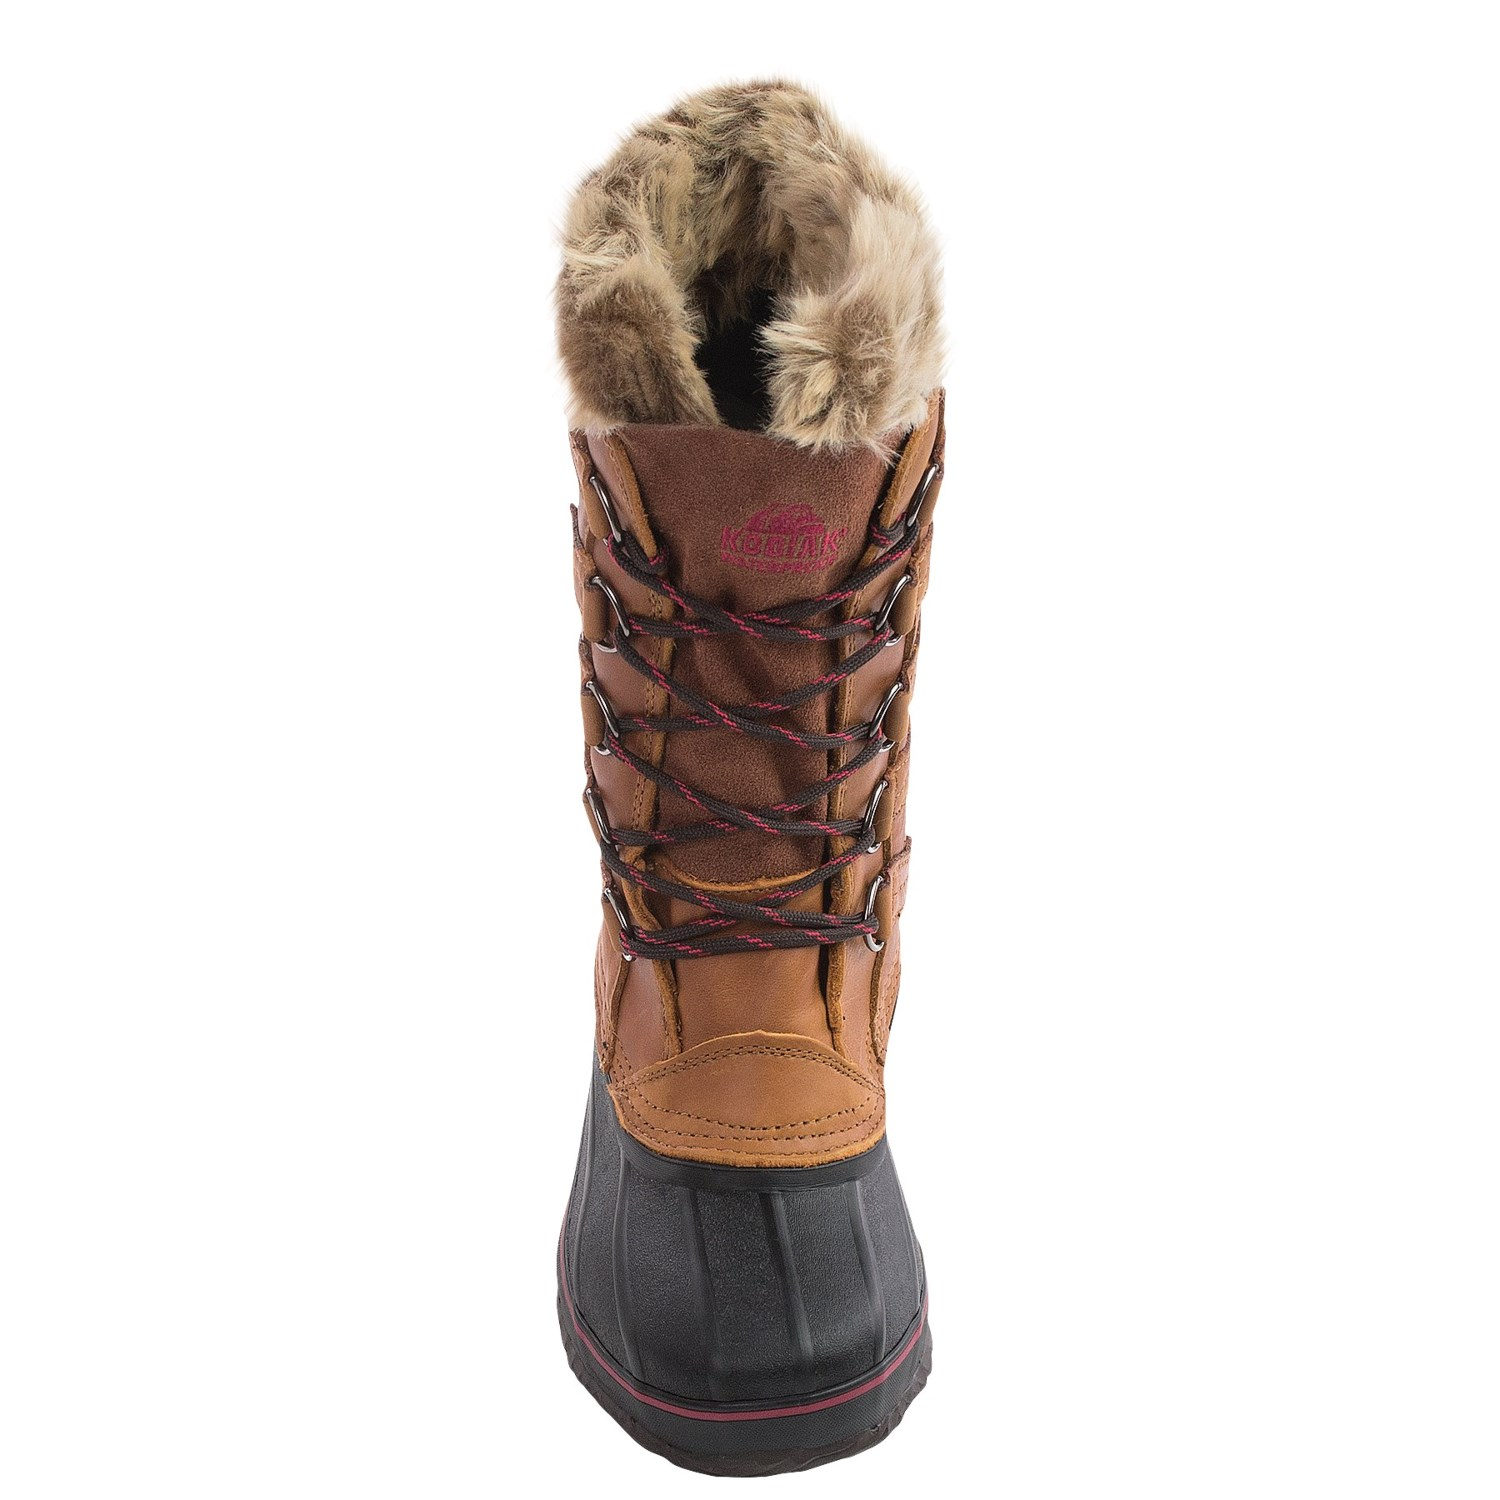 Simple Brown Boots Boots Womenu0026#39;s Kodiak Reilly Mid-Cut Waterproof ...